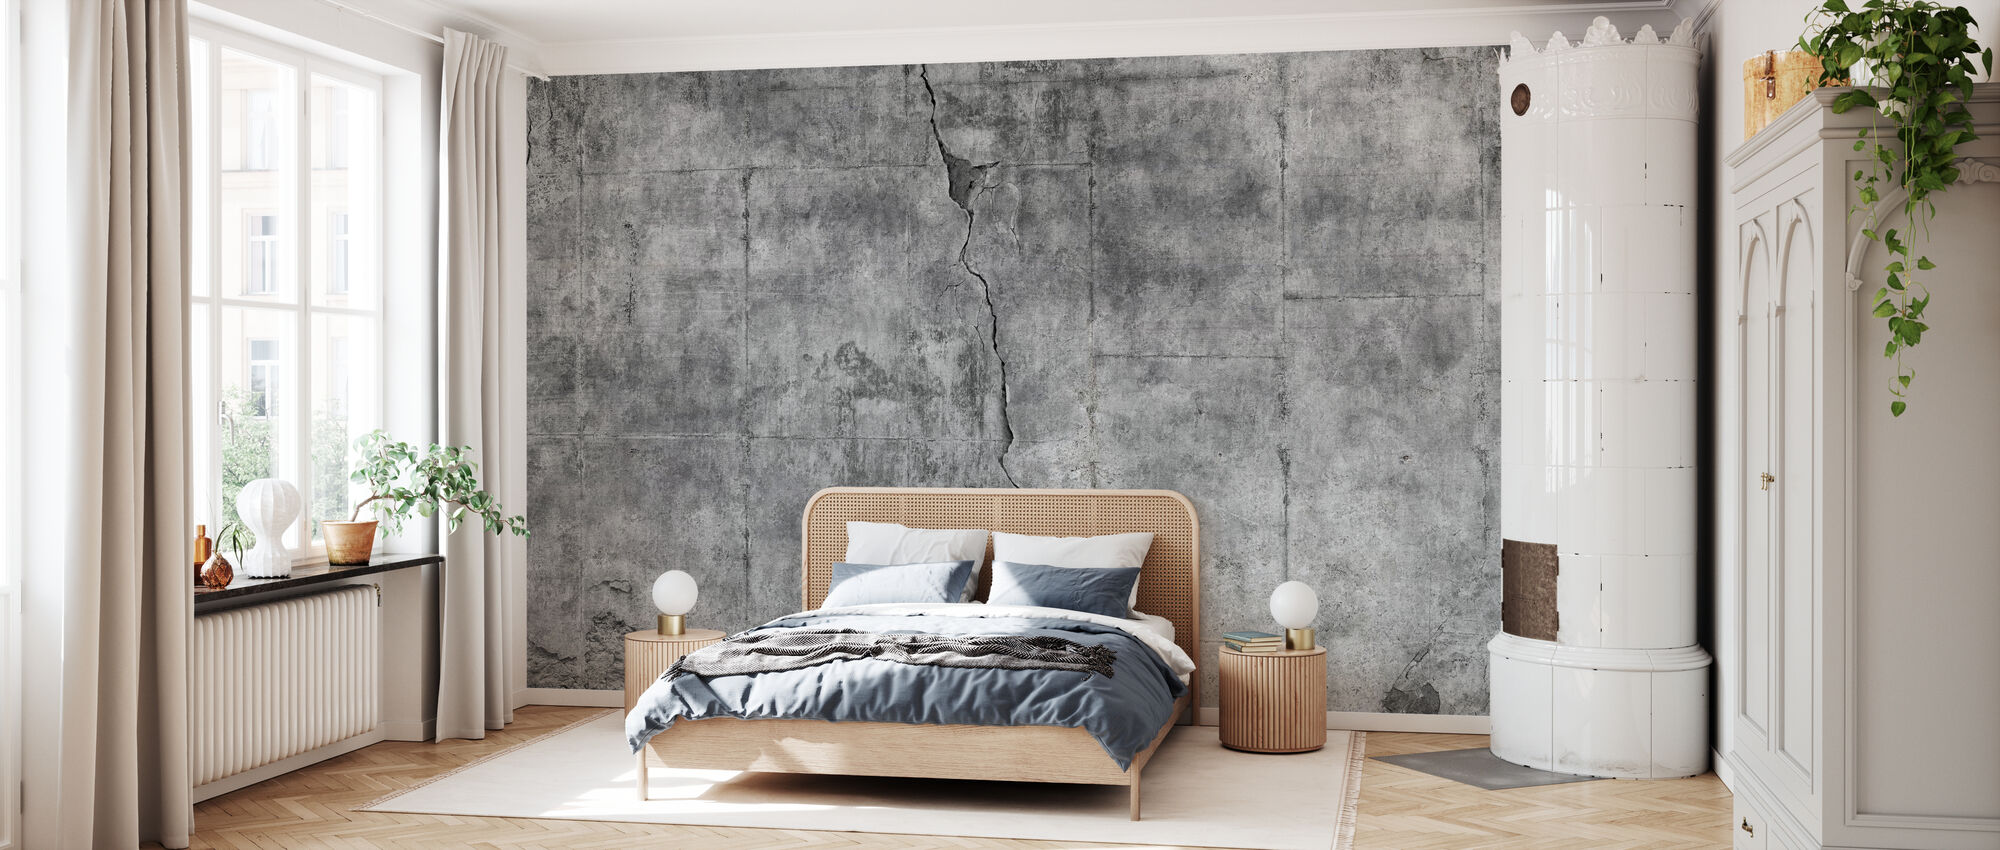 Dirty Cracked Concrete Wall - Wallpaper - Bedroom